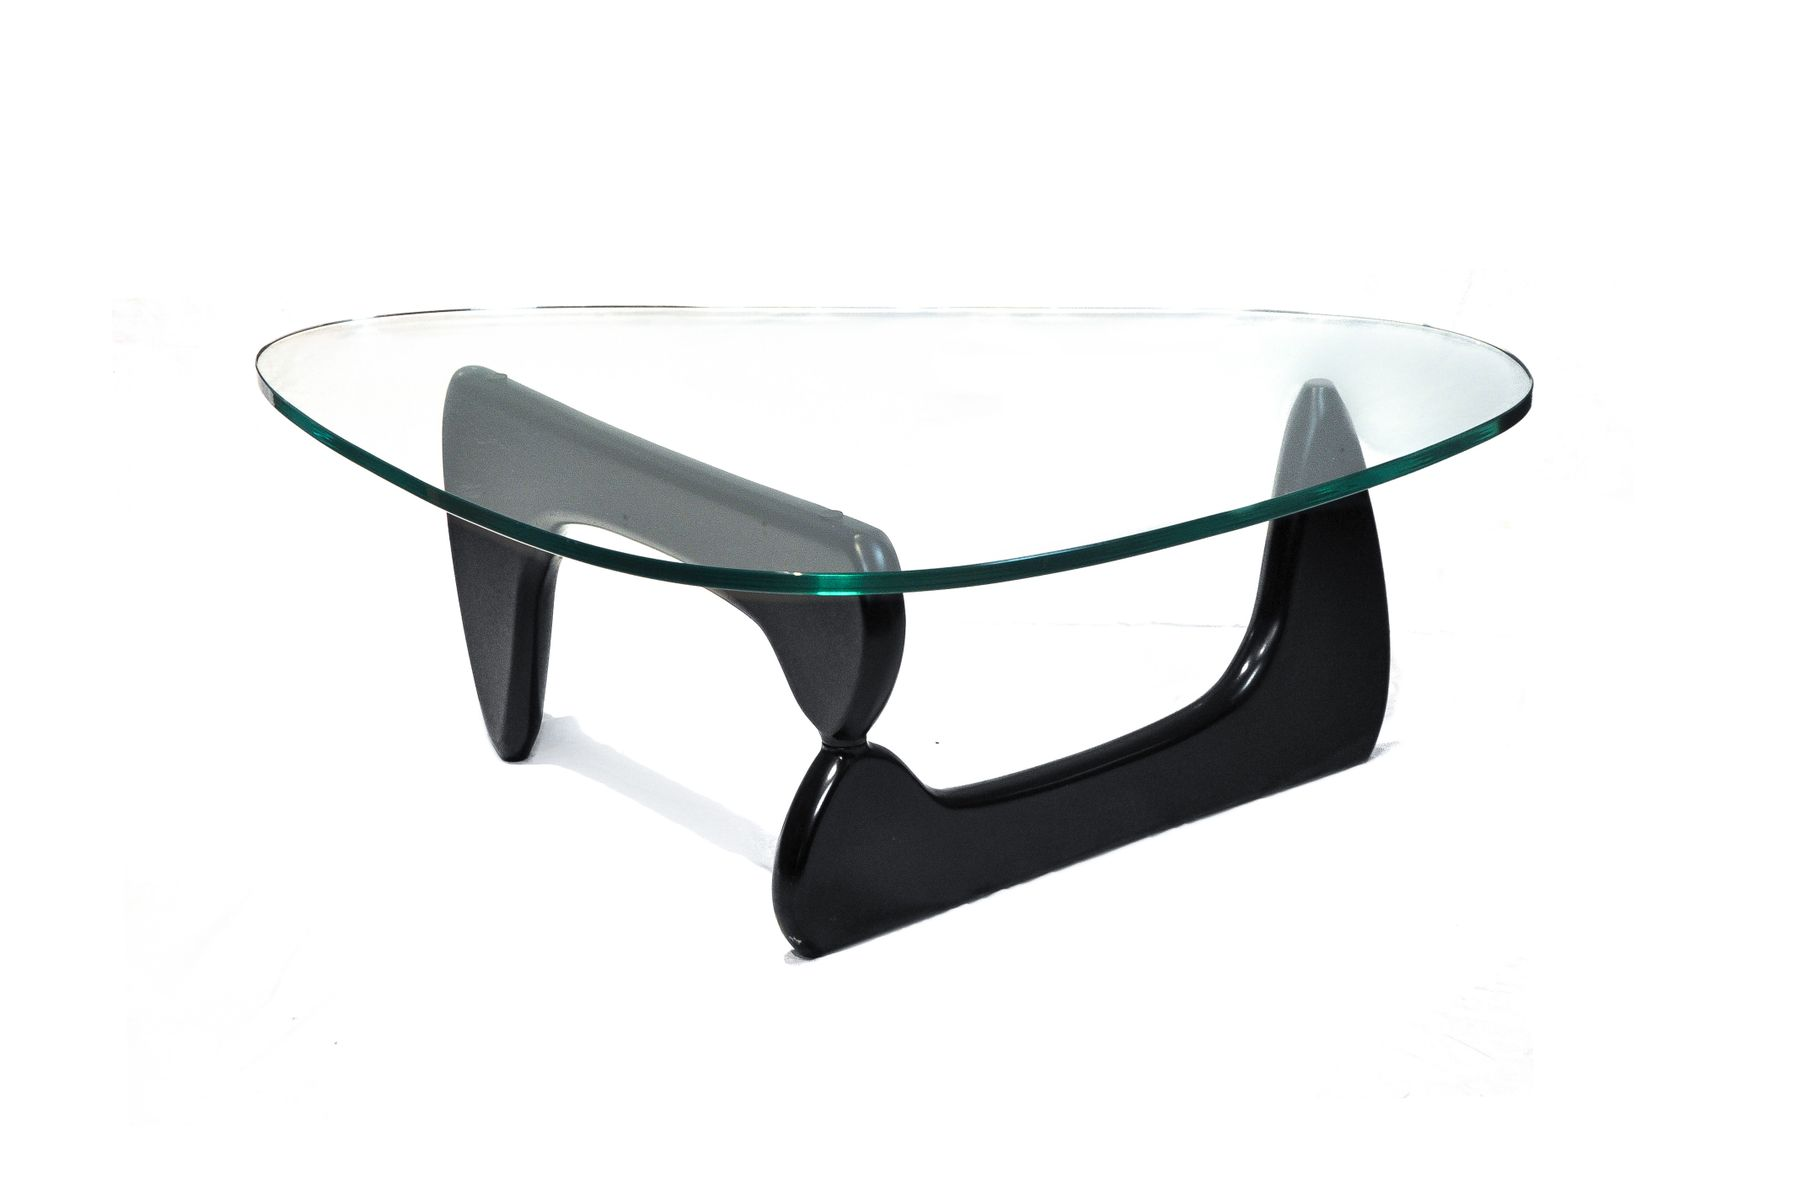 Vintage In 50 Coffee Table By Isamu Noguchi For Herman Miller For Sale At Pamono